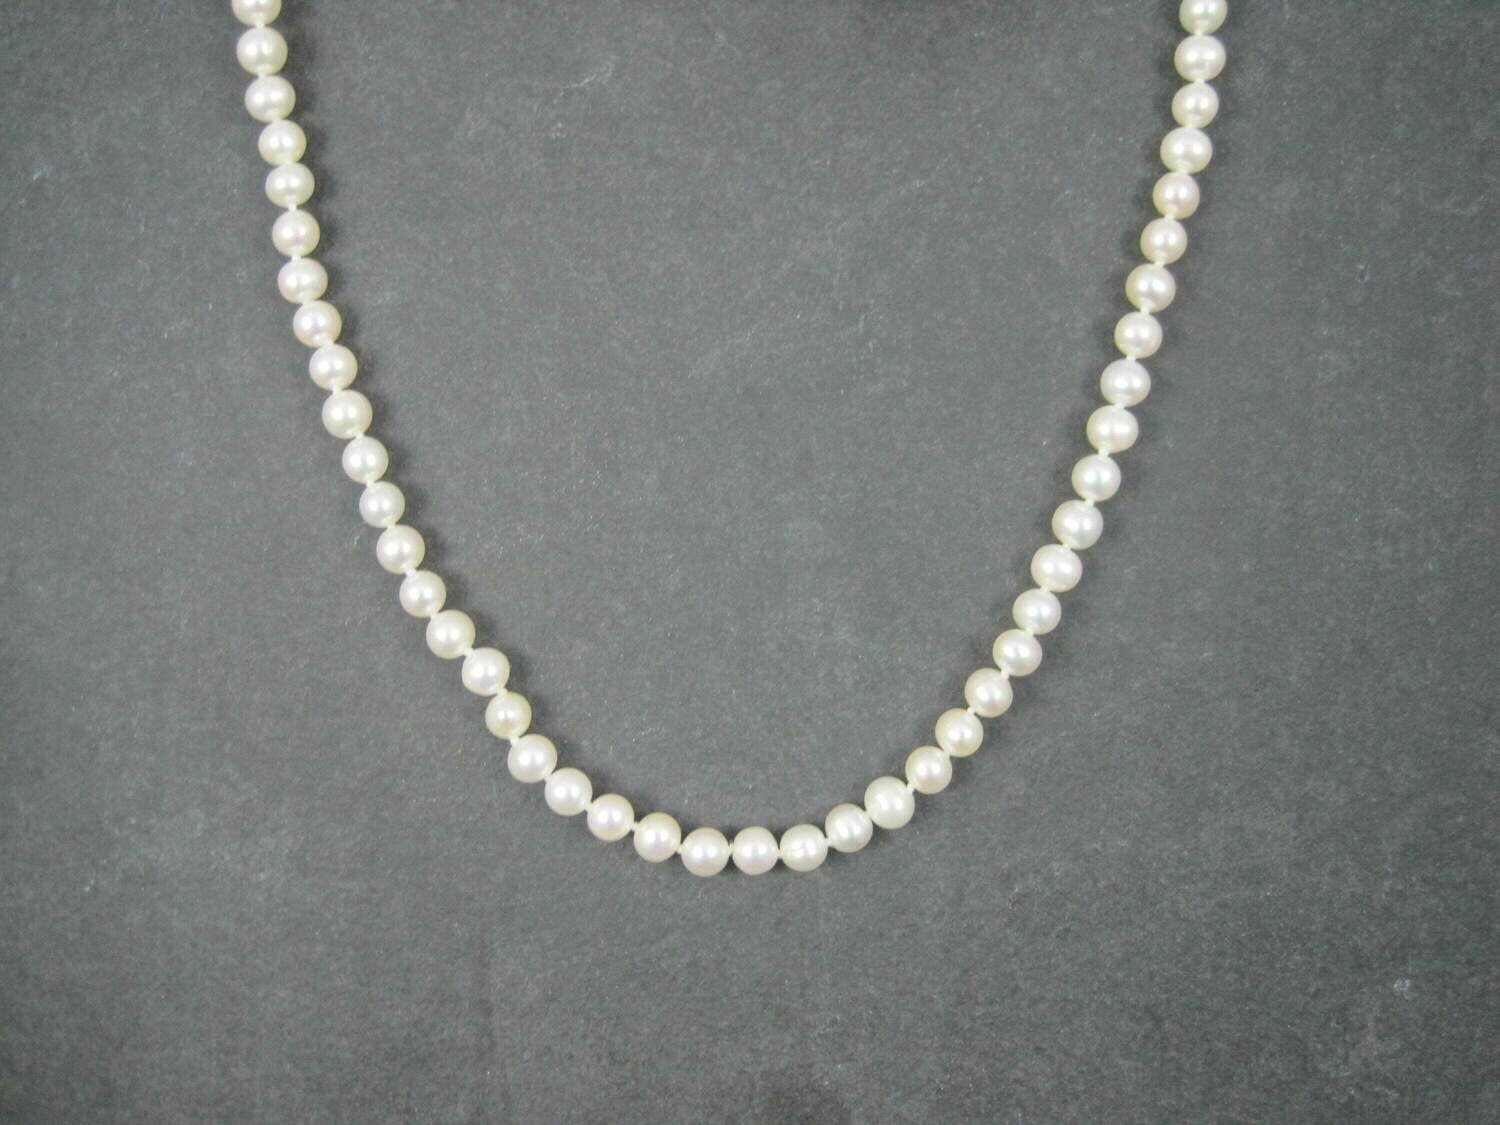 Vintage Freshwater Pearl Necklace Earrings Jewelry Set 18 Inches